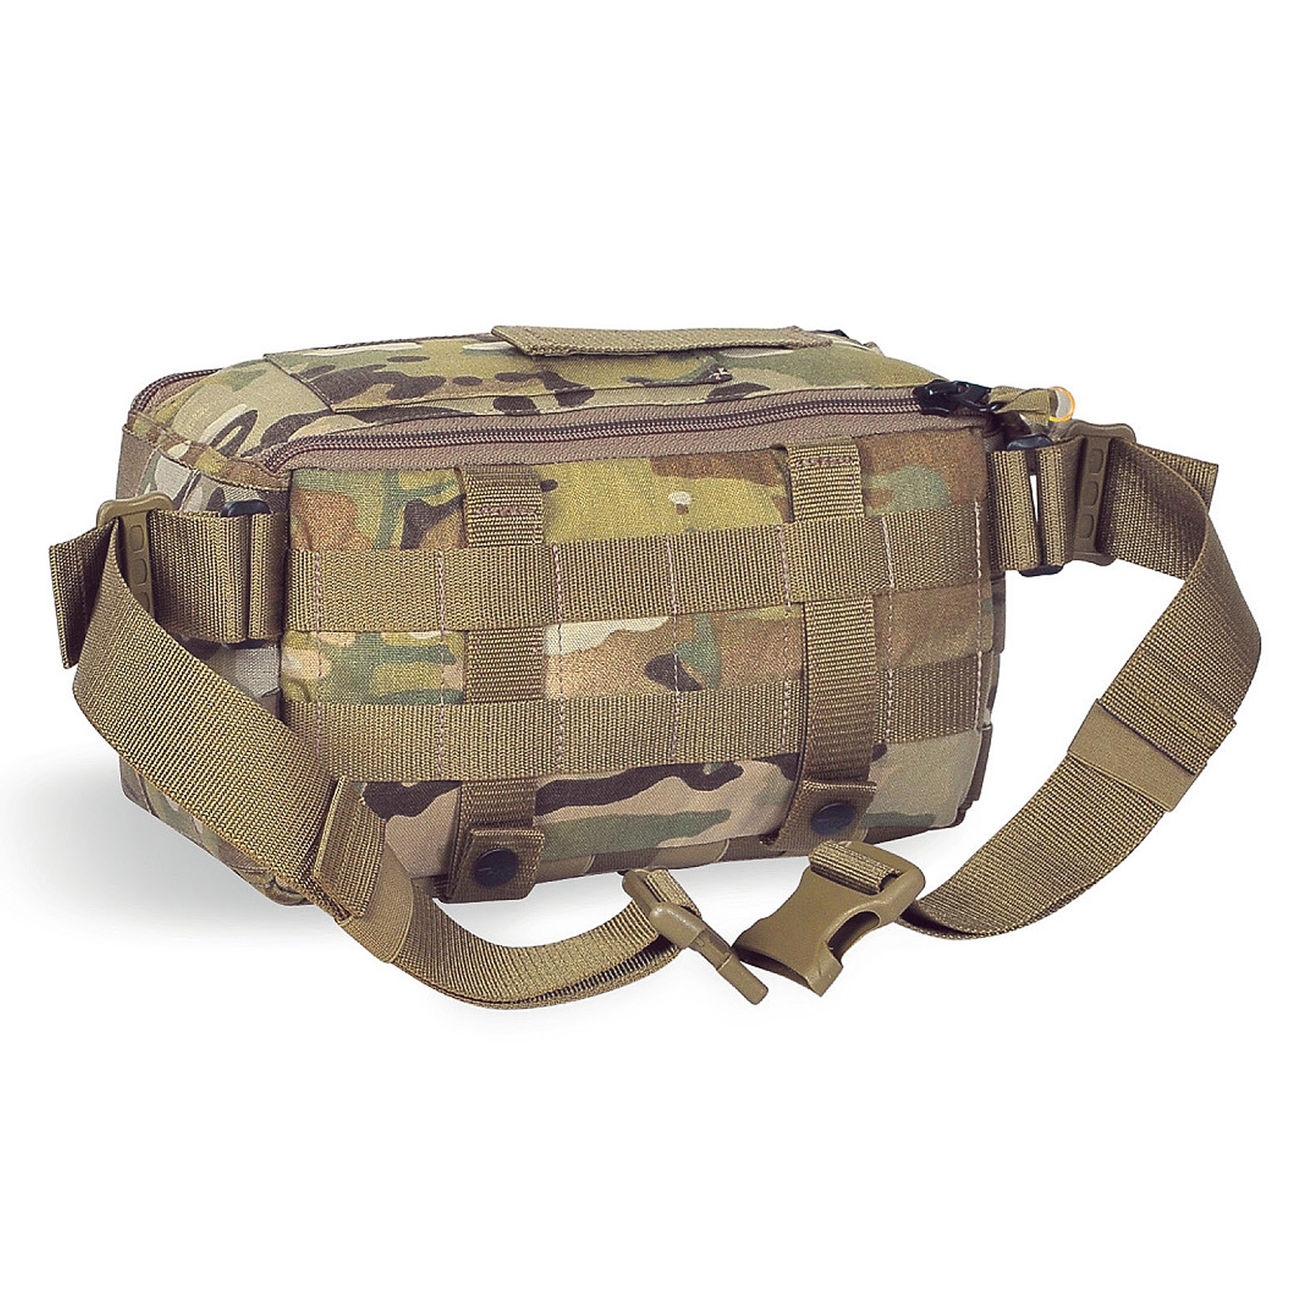 TT Small Medic Pack Multicam 1